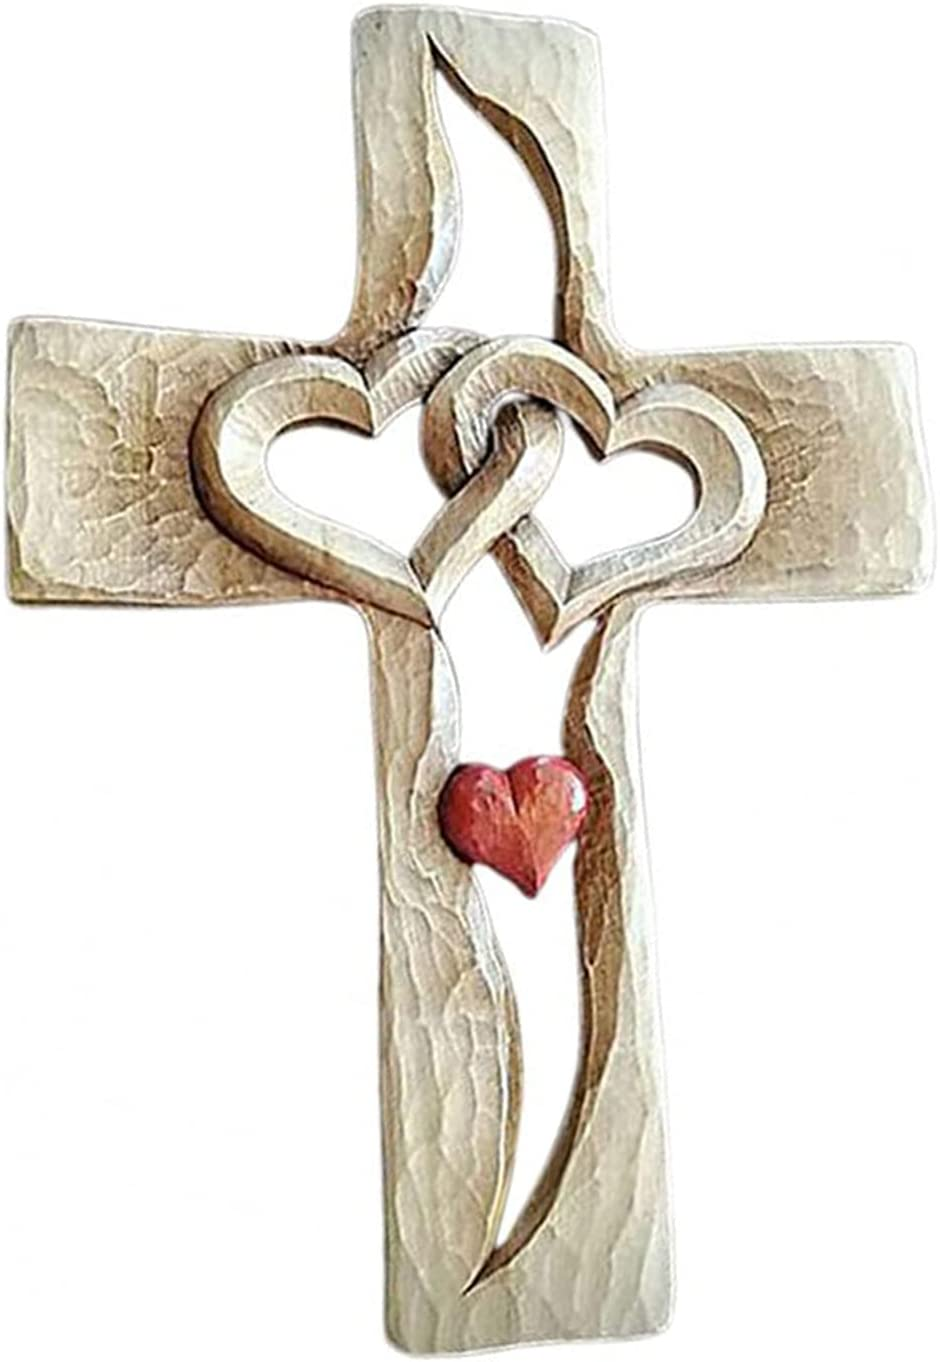 Carved price Al sold out. Wooden Cross - Love Intertwined Hearts,Aopwsrlyi